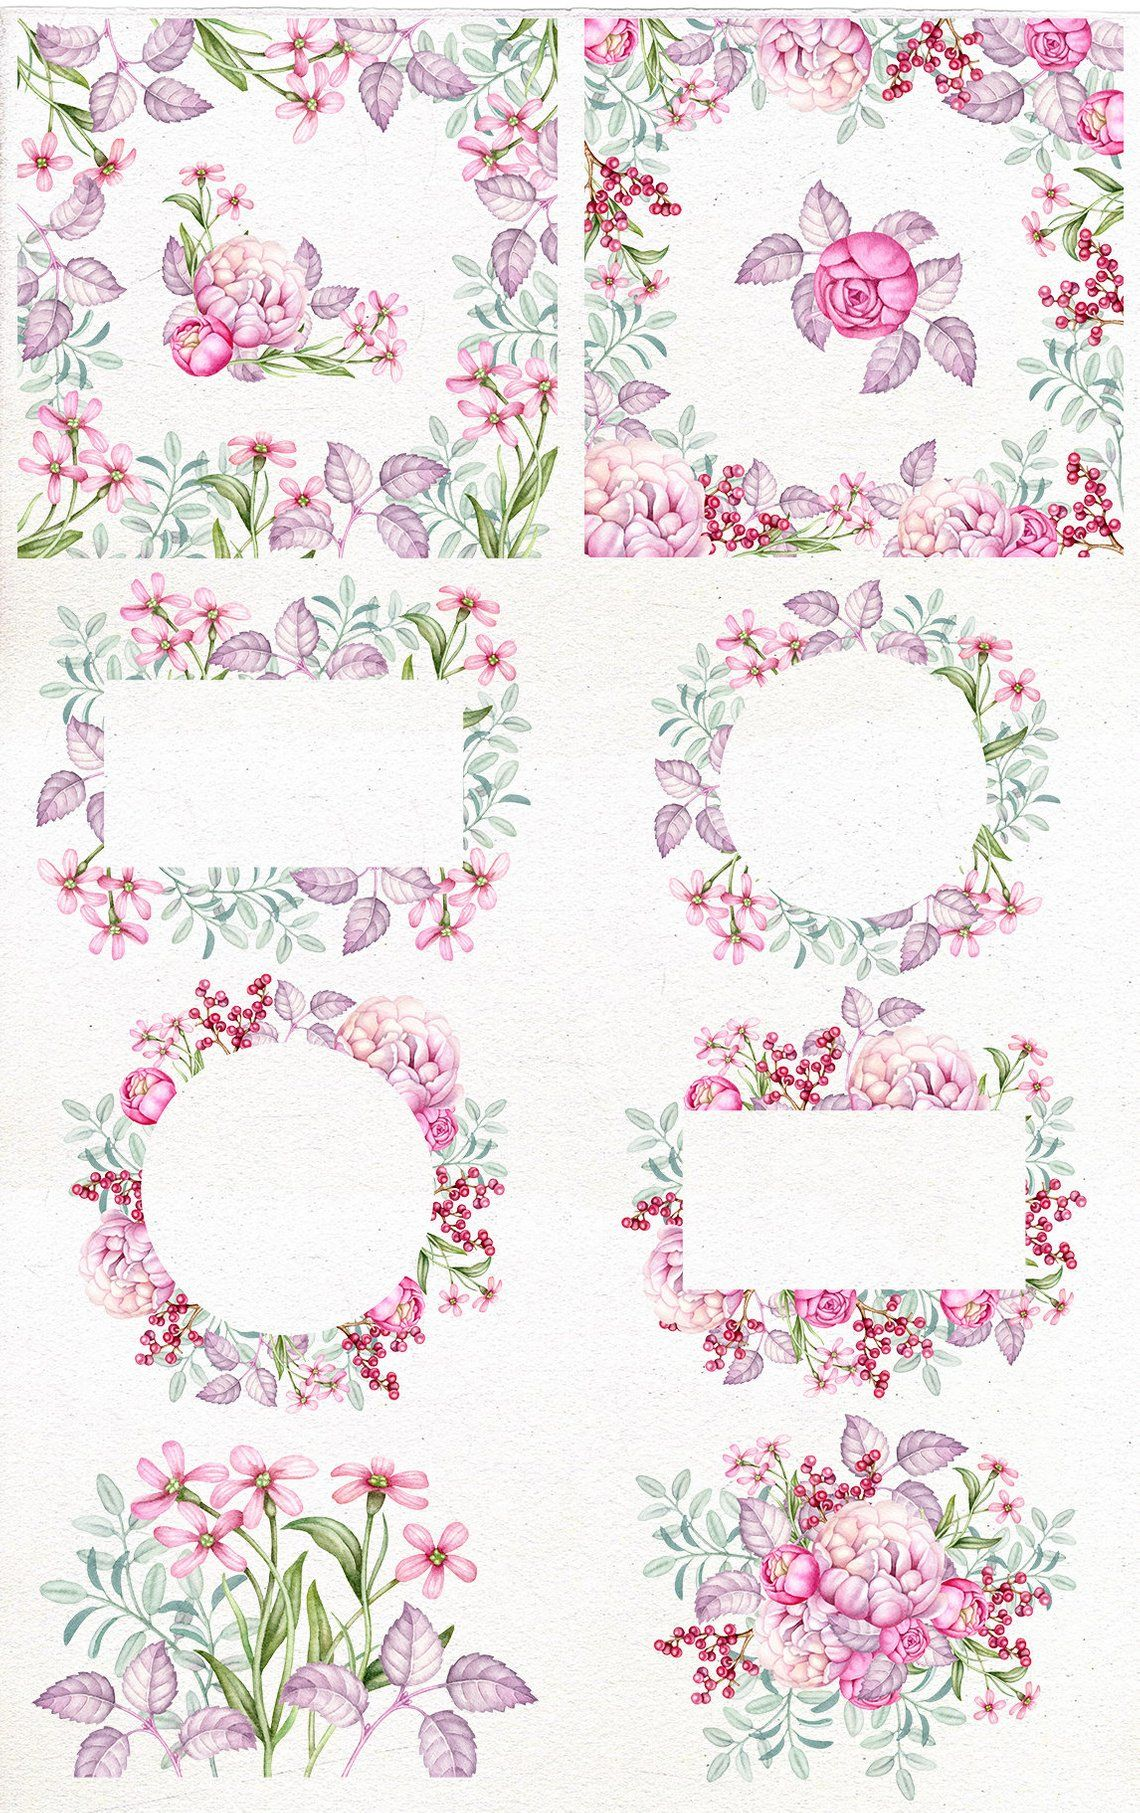 Watercolor Floral Frame Clip Art Digital Watercolor Clipart